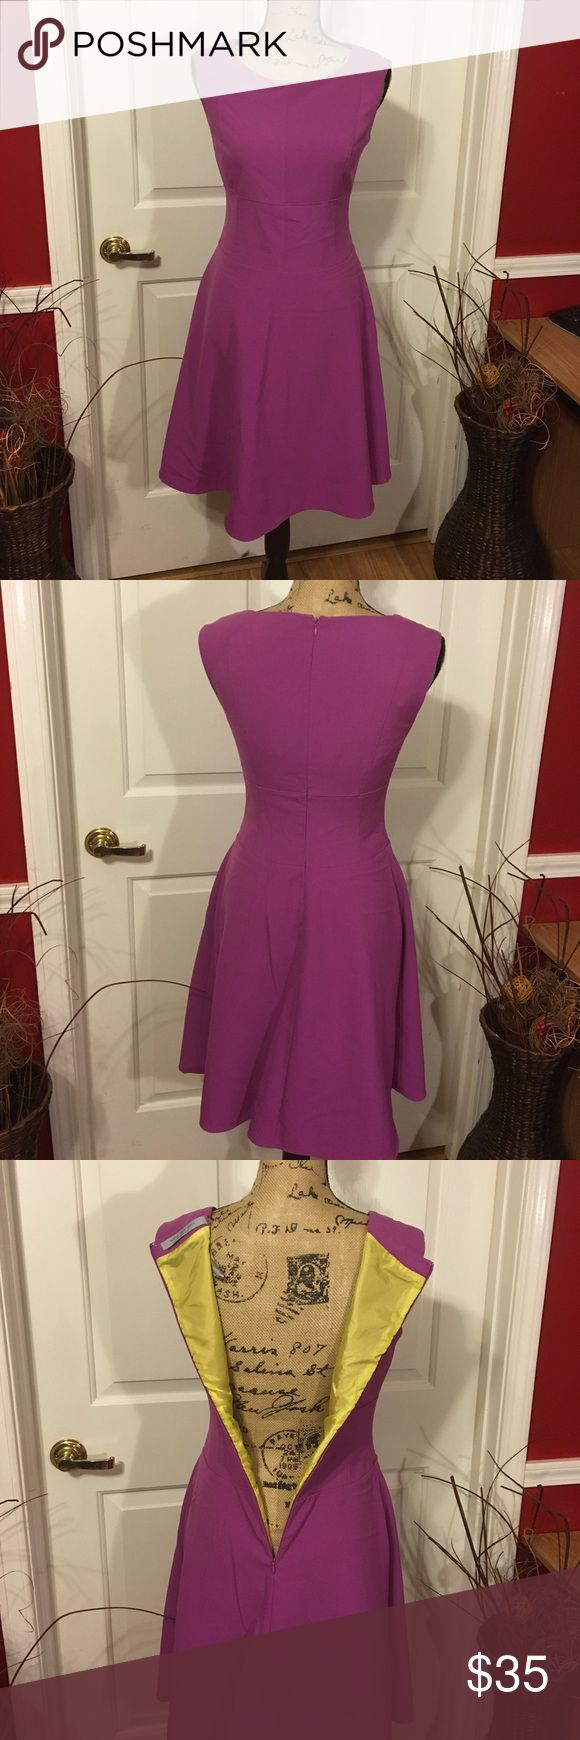 ANDREW MARC. MARC NEW YORK DRESS Beautiful and elegant dress excellent condition Andrew Marc Dresses